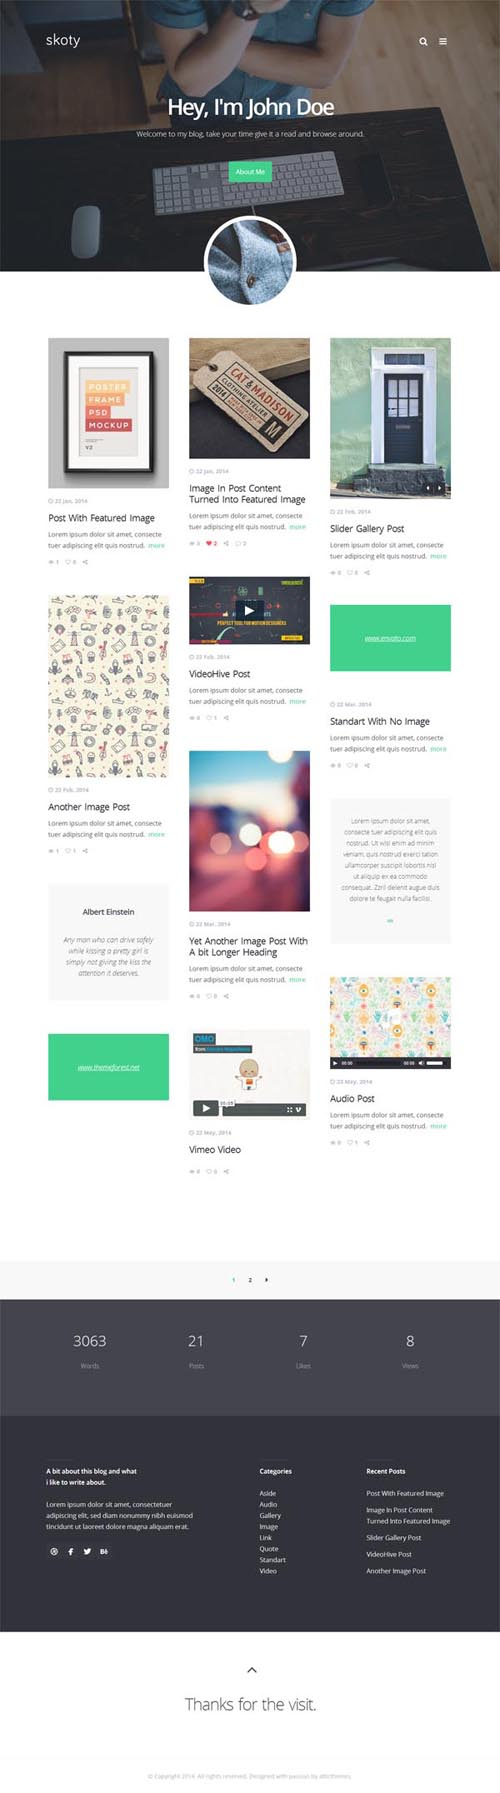 Skoty - Responsive Multipurpose Blogging Theme